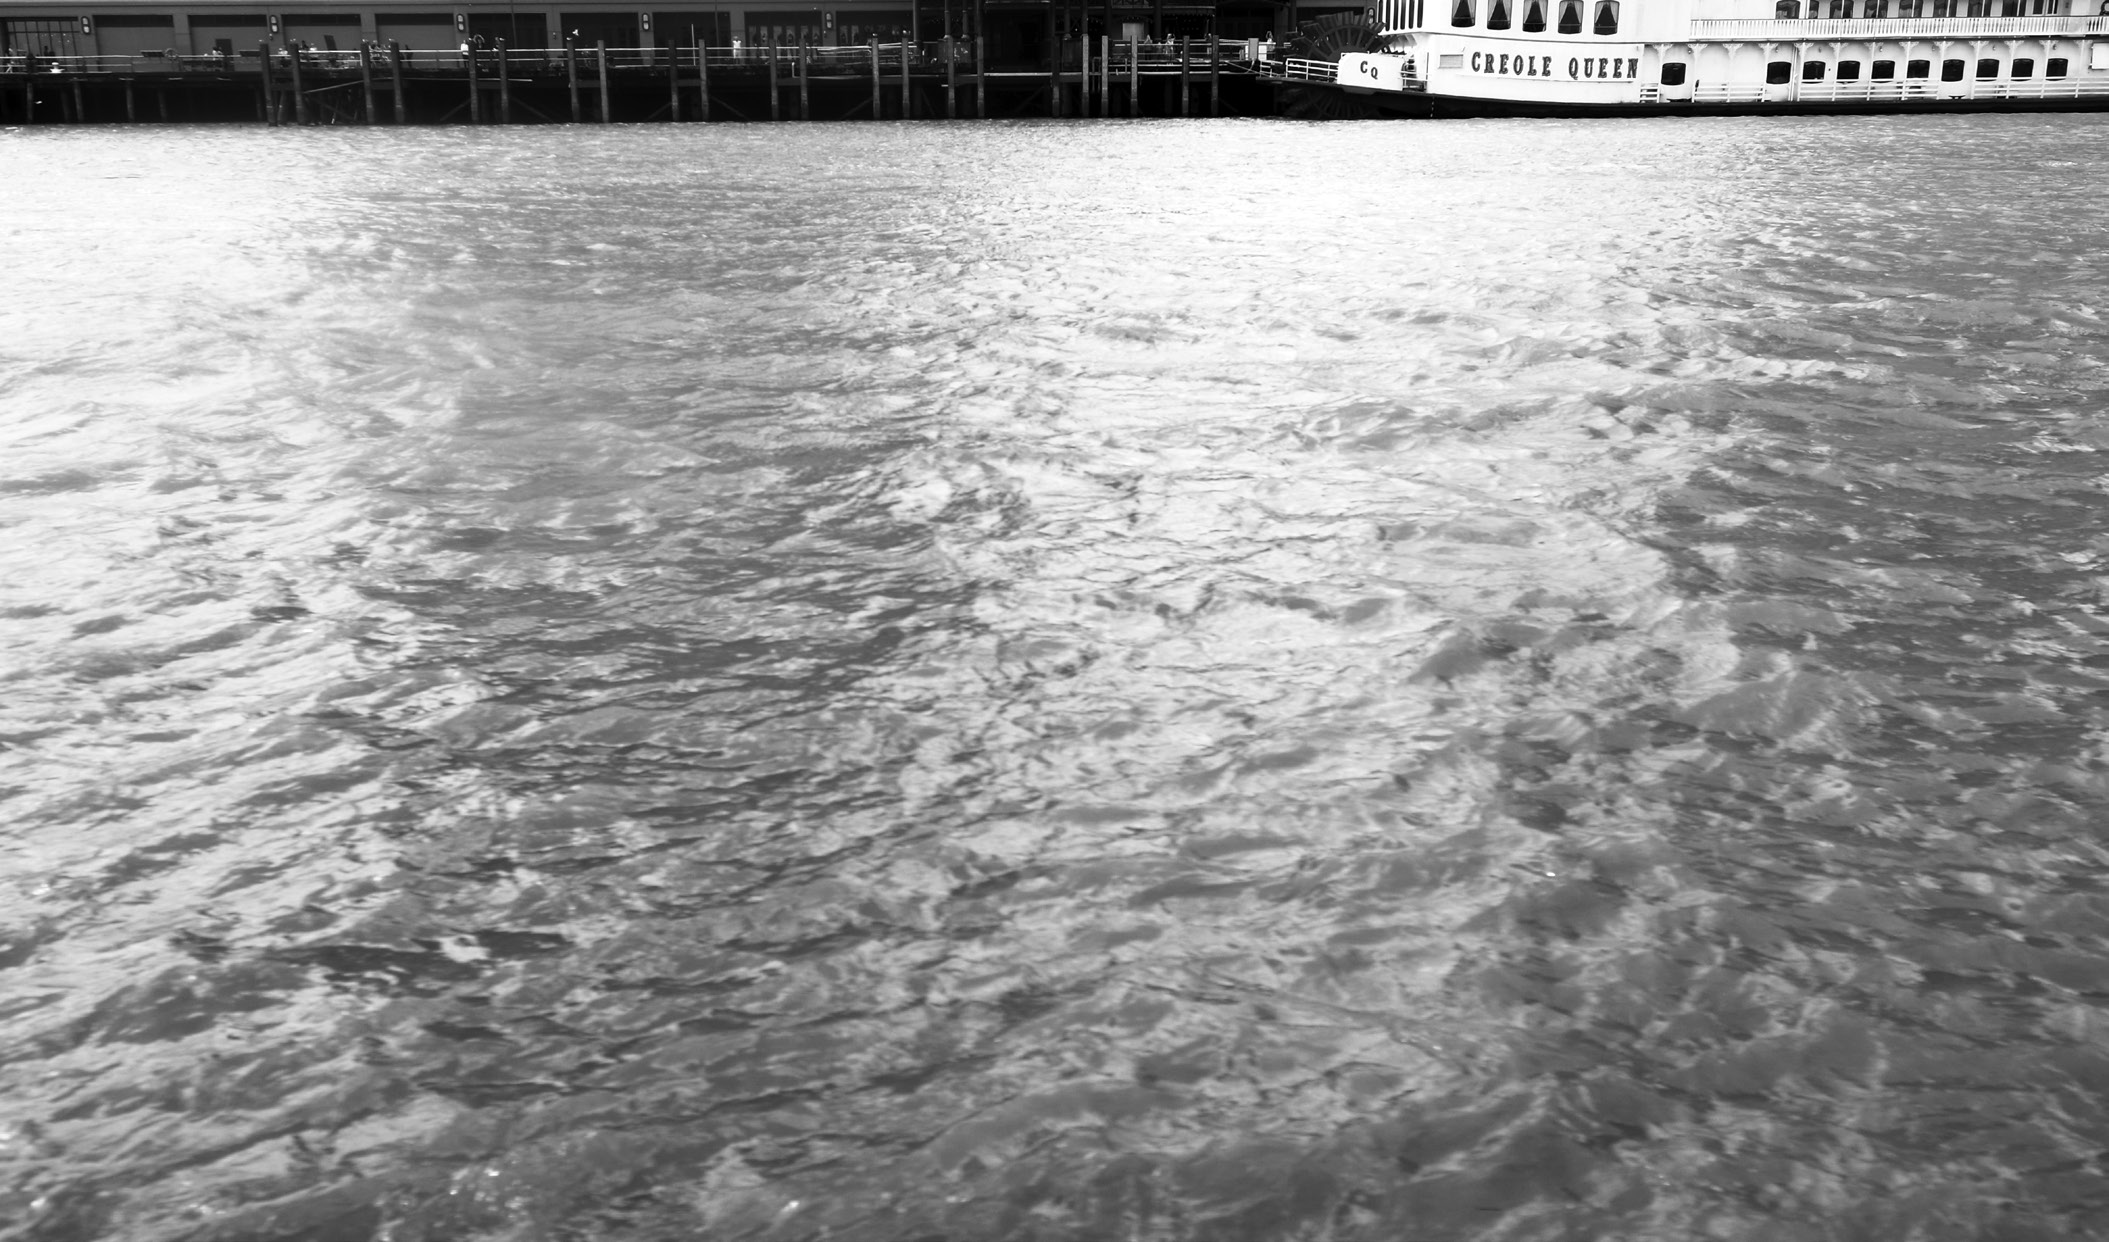 Black and white shot of a river. A large passenger boat named 'CREOLE QUEEN' appears in the distance.